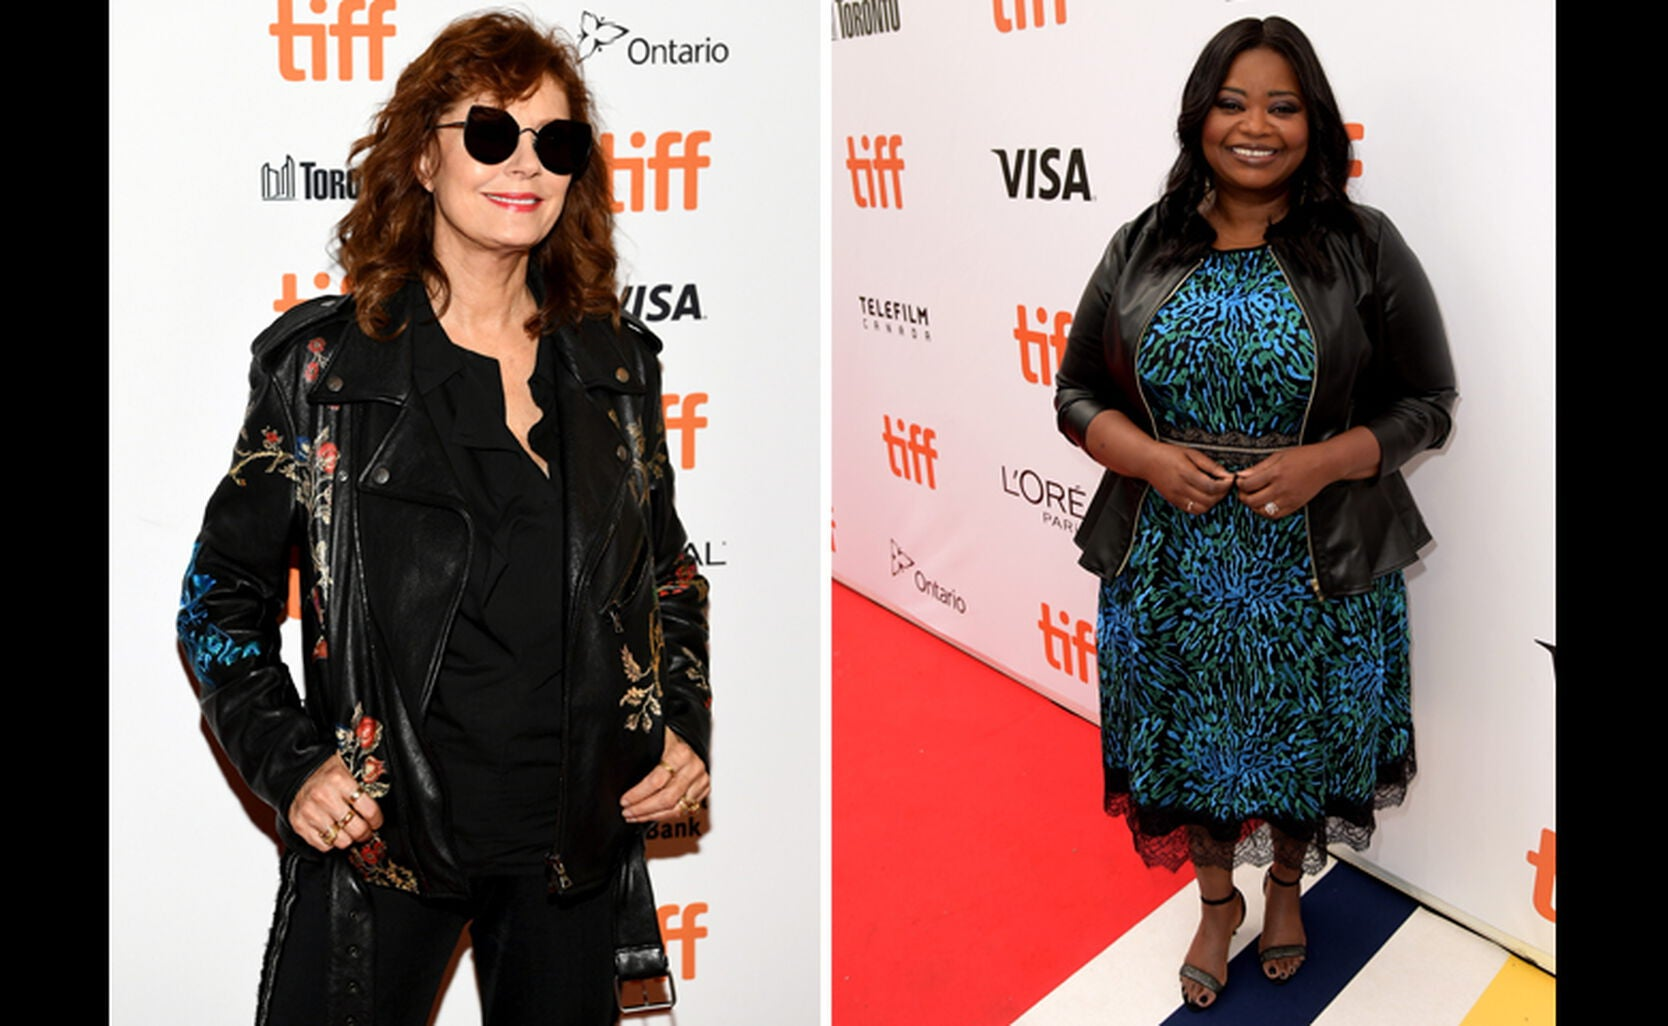 Susan Sarandon, Octavia Spencer